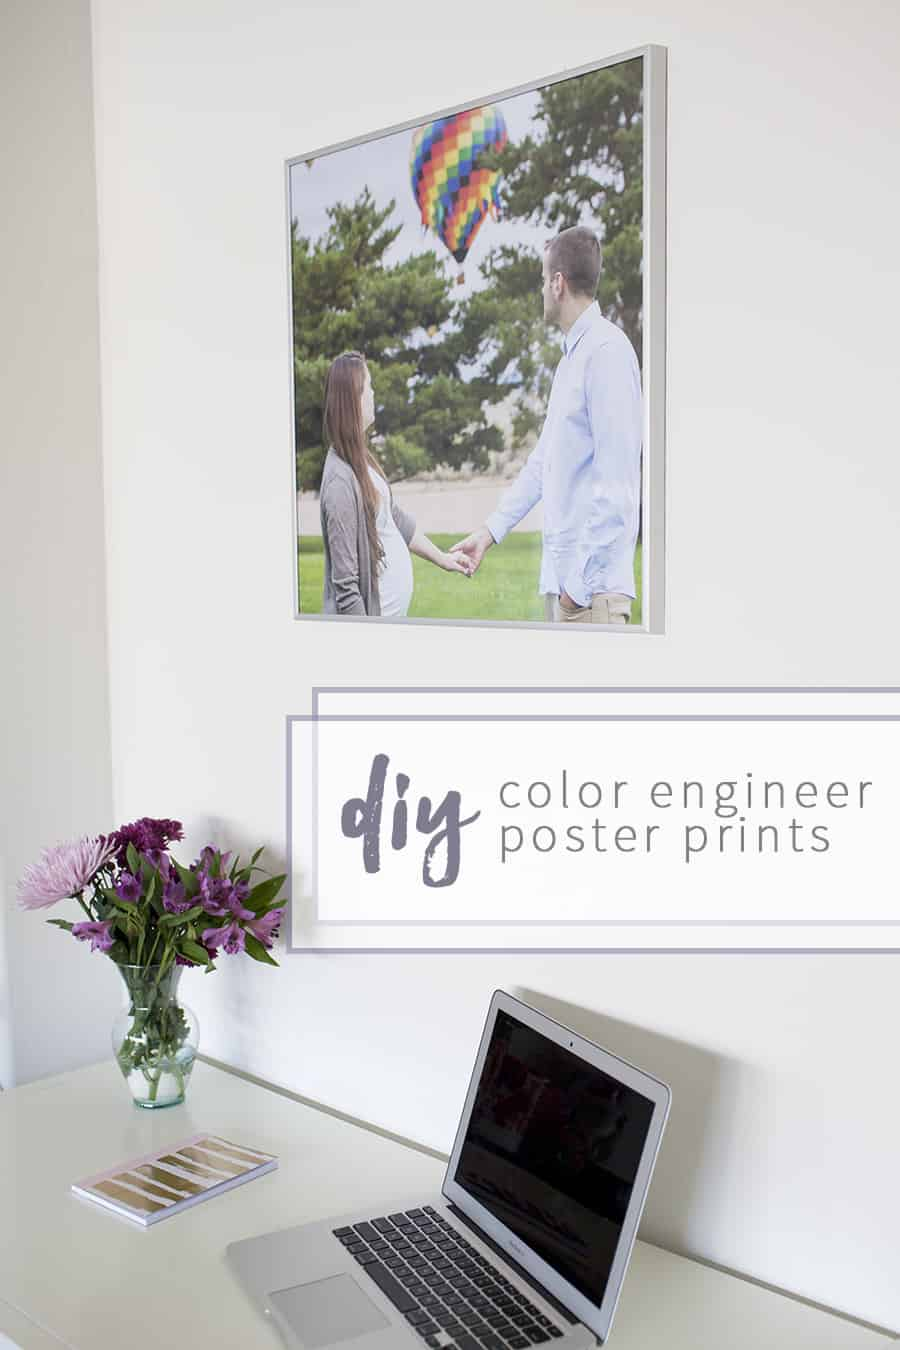 Print oversized, large color photos and frame them for less than $20! Get the tutorial for these color engineer prints.